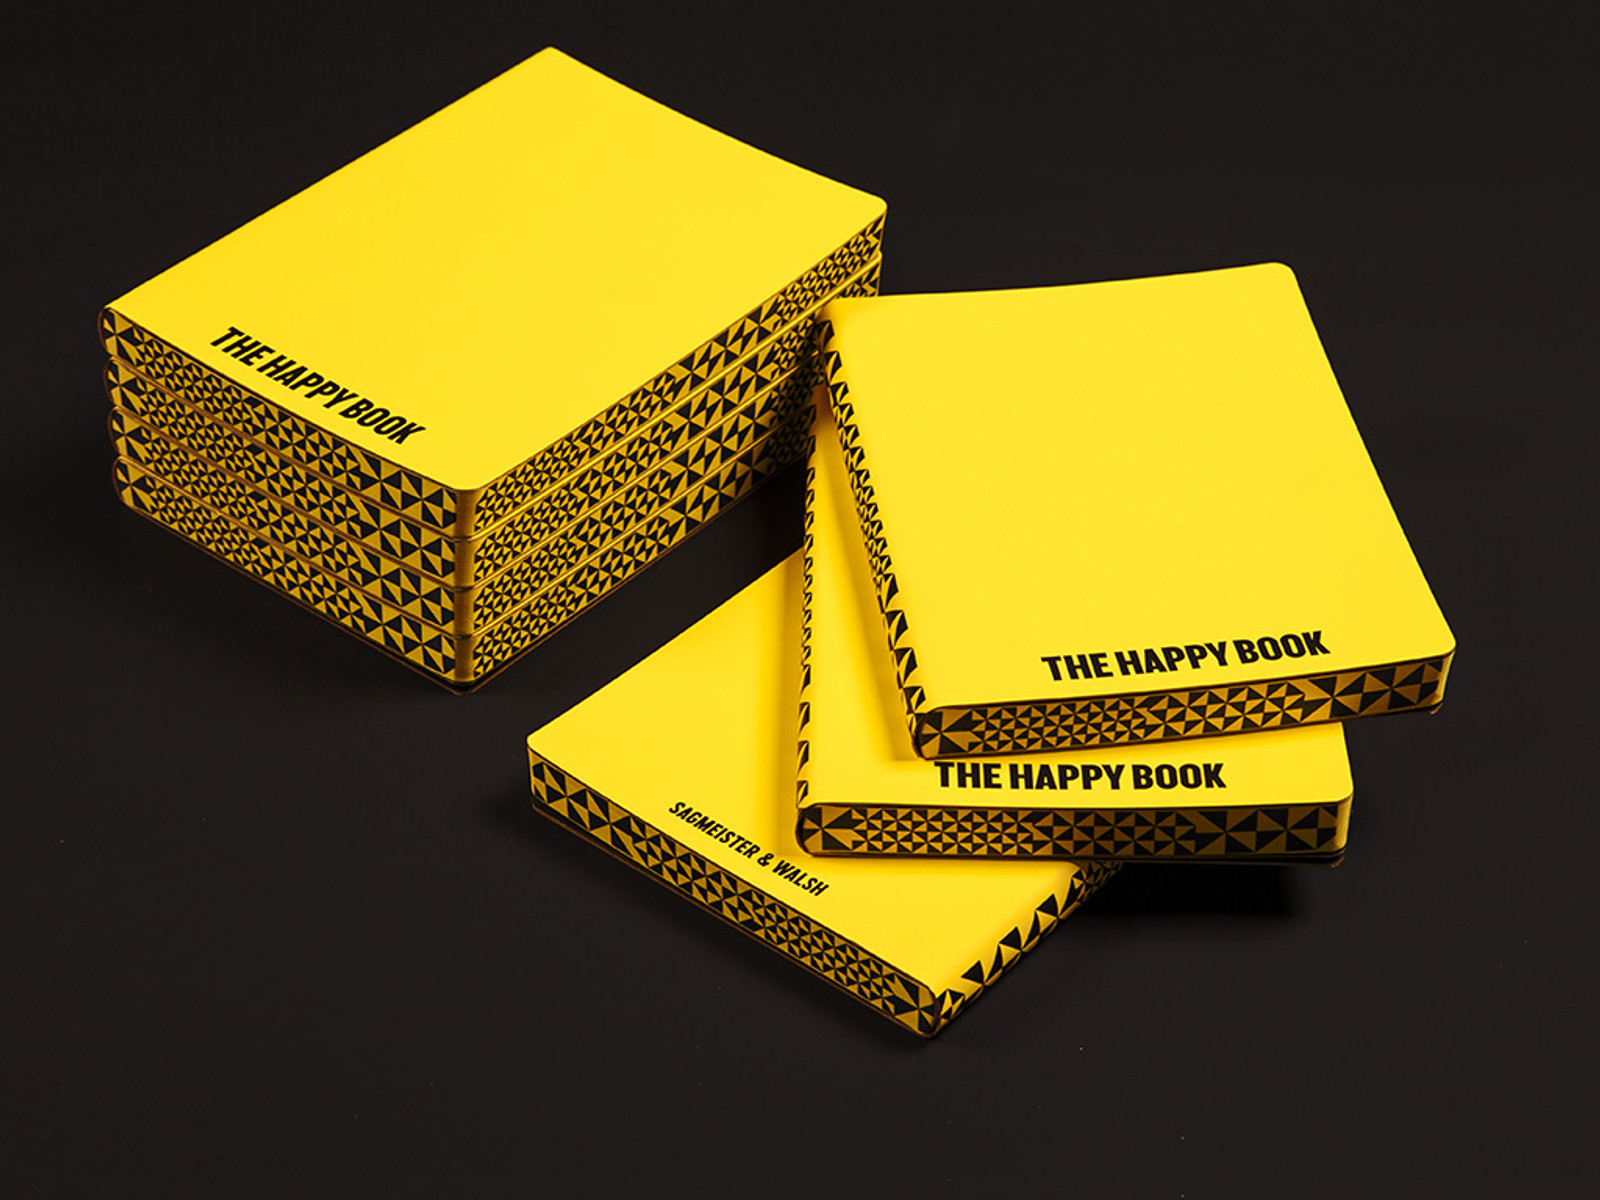 The Happy Book By Segmeister & Walsh A5 Notebook